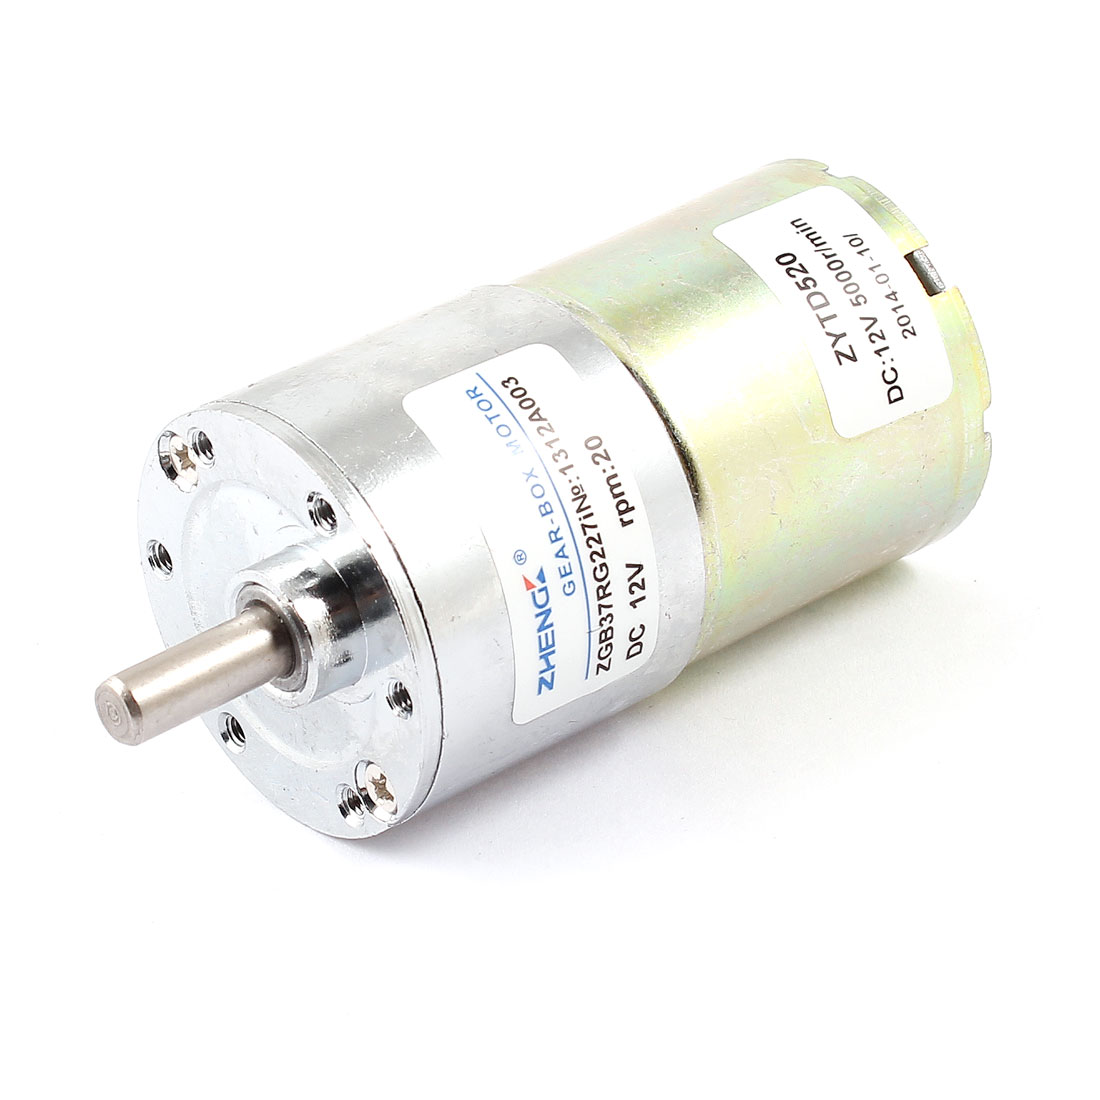 Shaft Diameter 6mm x 15mm DC 12V 20 RPM Speed 6mm Dia Shaft Magnetic Gearbox Electric Geared Motor 37mm x 86mm цены